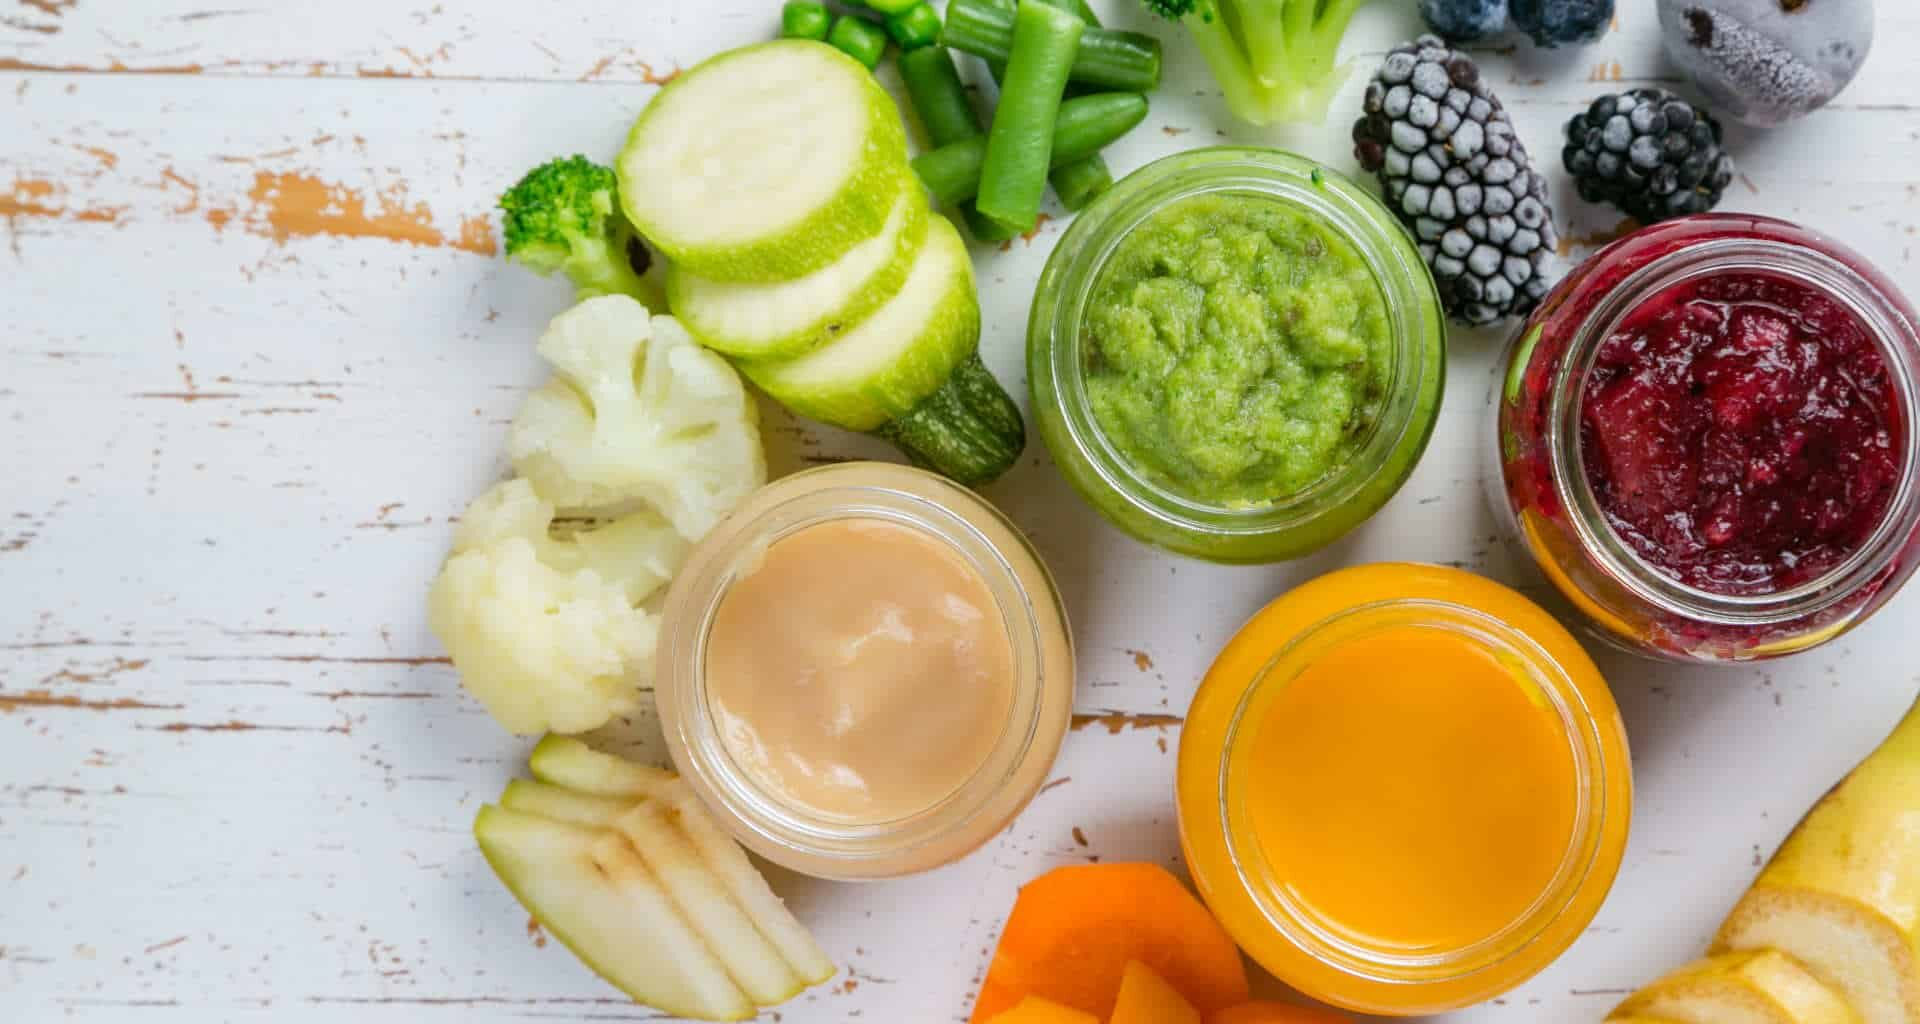 Organic Baby Food Market Insights by Size, Status and Forecast 2025: Abbott Laboratories, Nestle, Hero Group